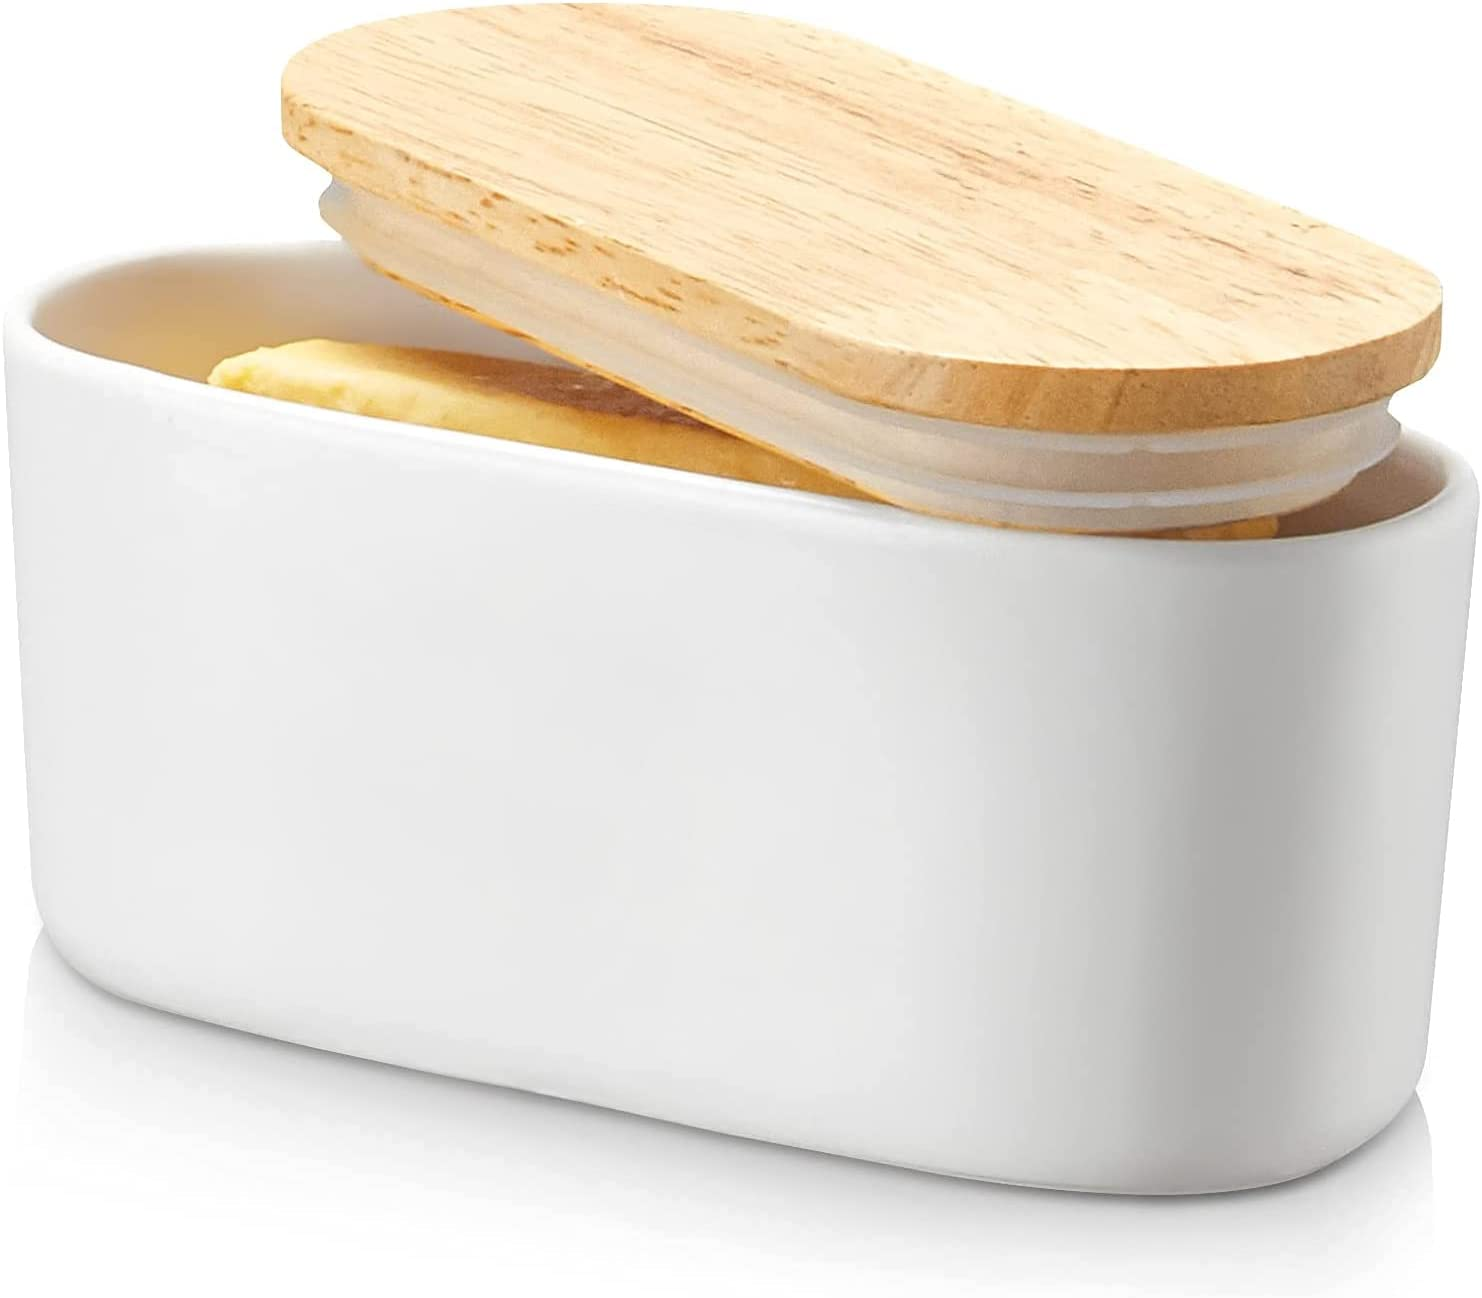 Rapid rise DOWAN Porcelain Butter Dish with Covered Woode Super intense SALE Container